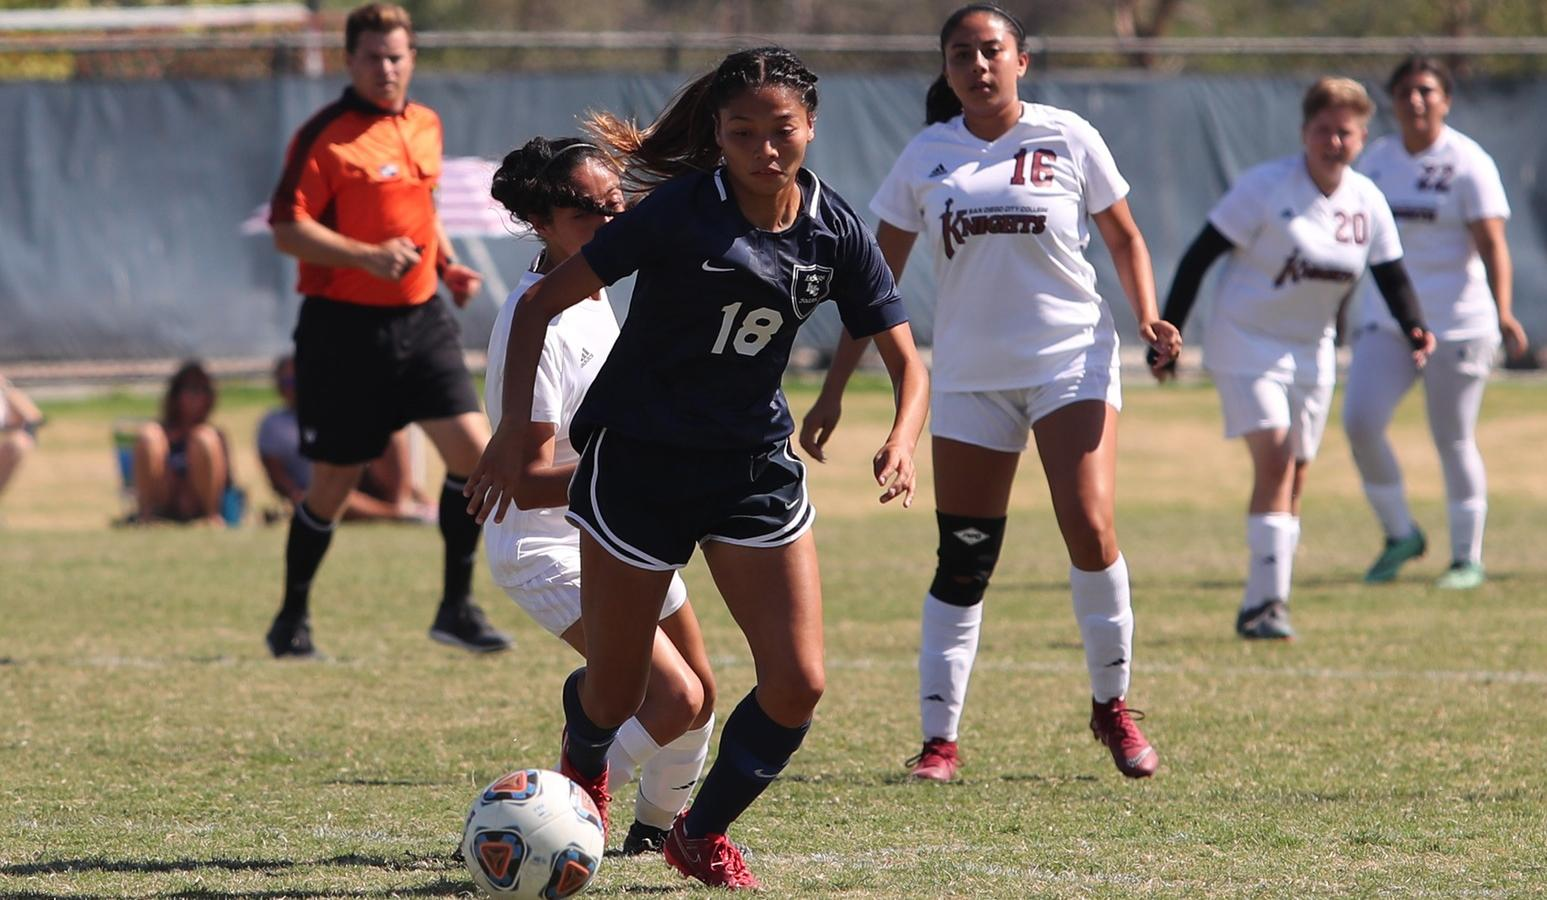 Women's soccer team falls to Las Positas in final tourney game